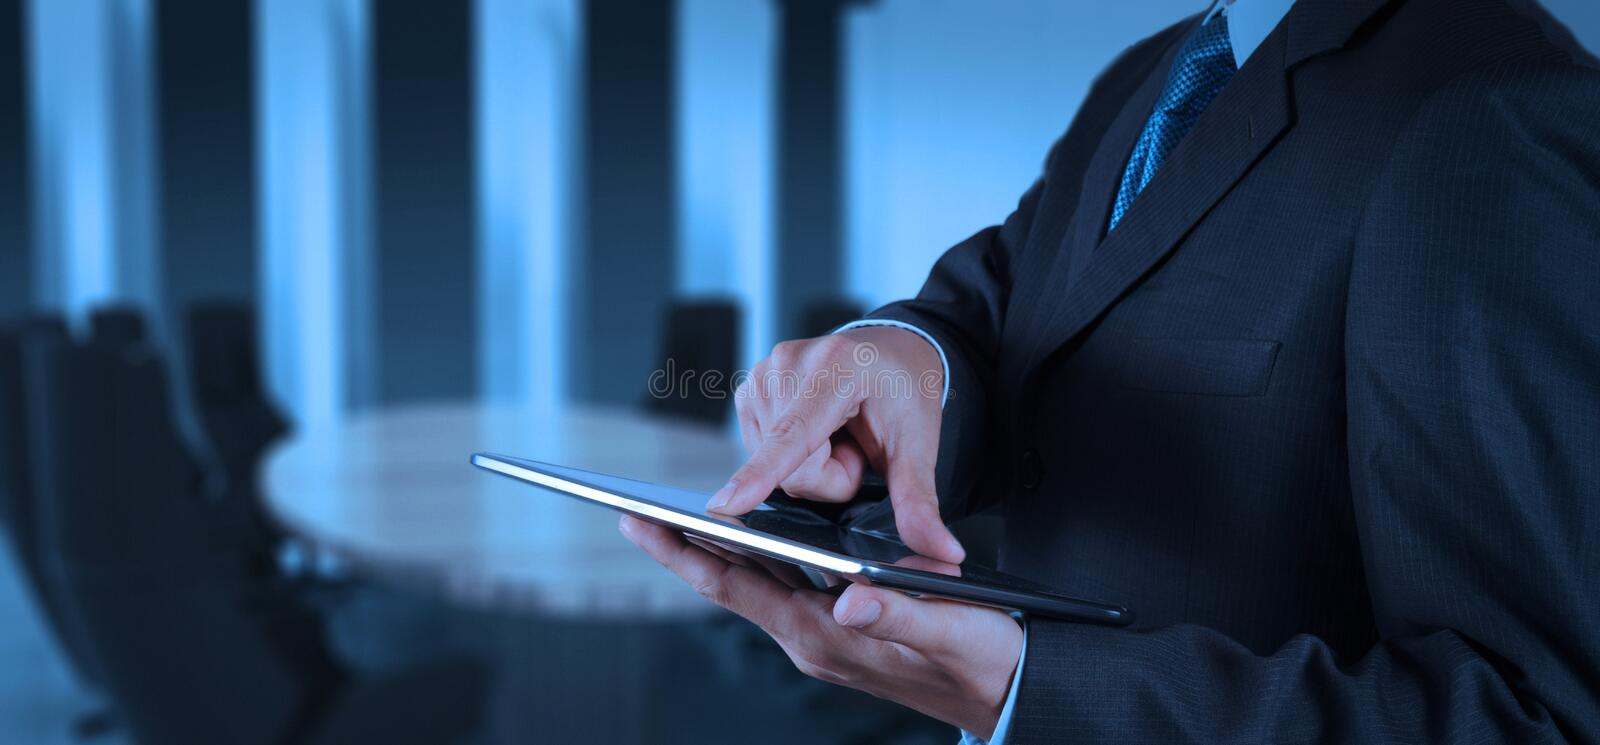 Businessman Success Working With Tablet Computer His Board Room Stock Photo